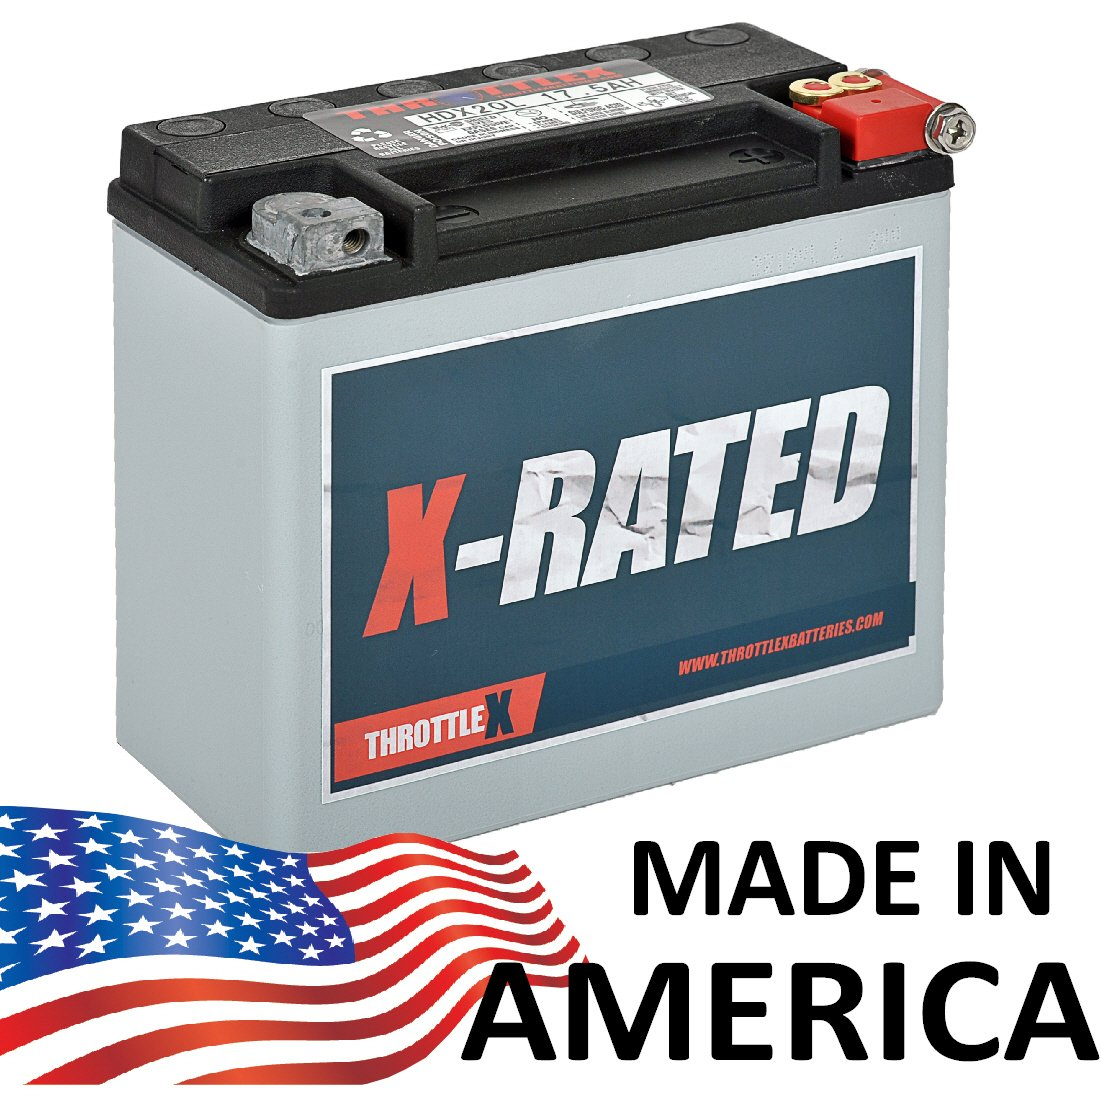 HDX20L - Harley Davidson Replacement Motorcycle Battery. by ThrottleX Batteries